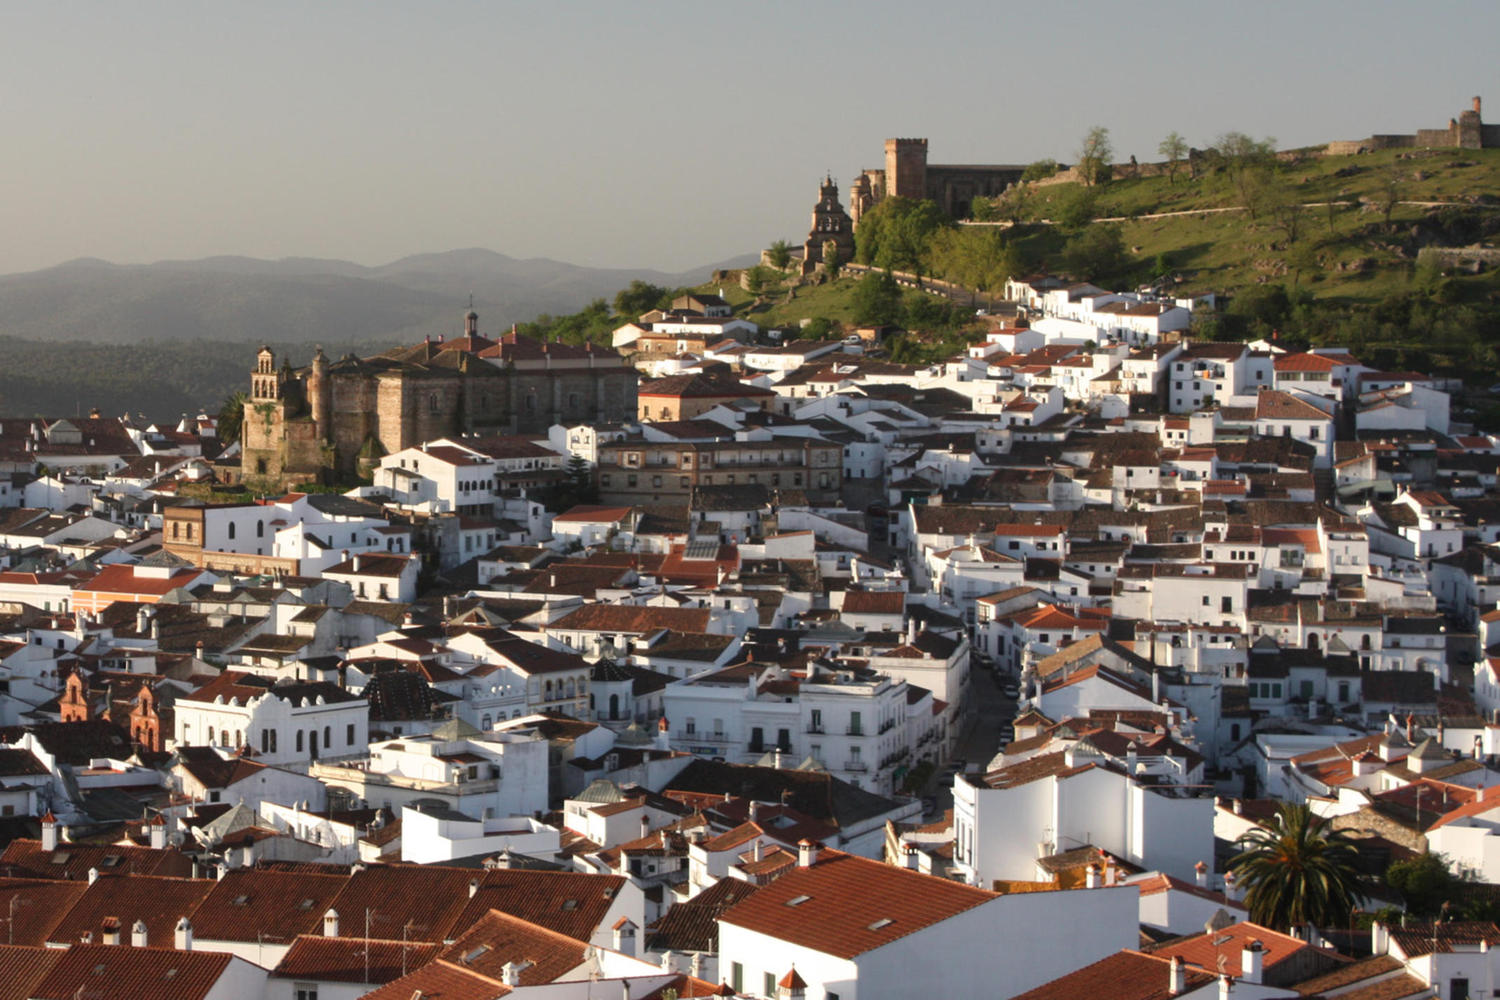 The pictoresque white villages of Aracena.